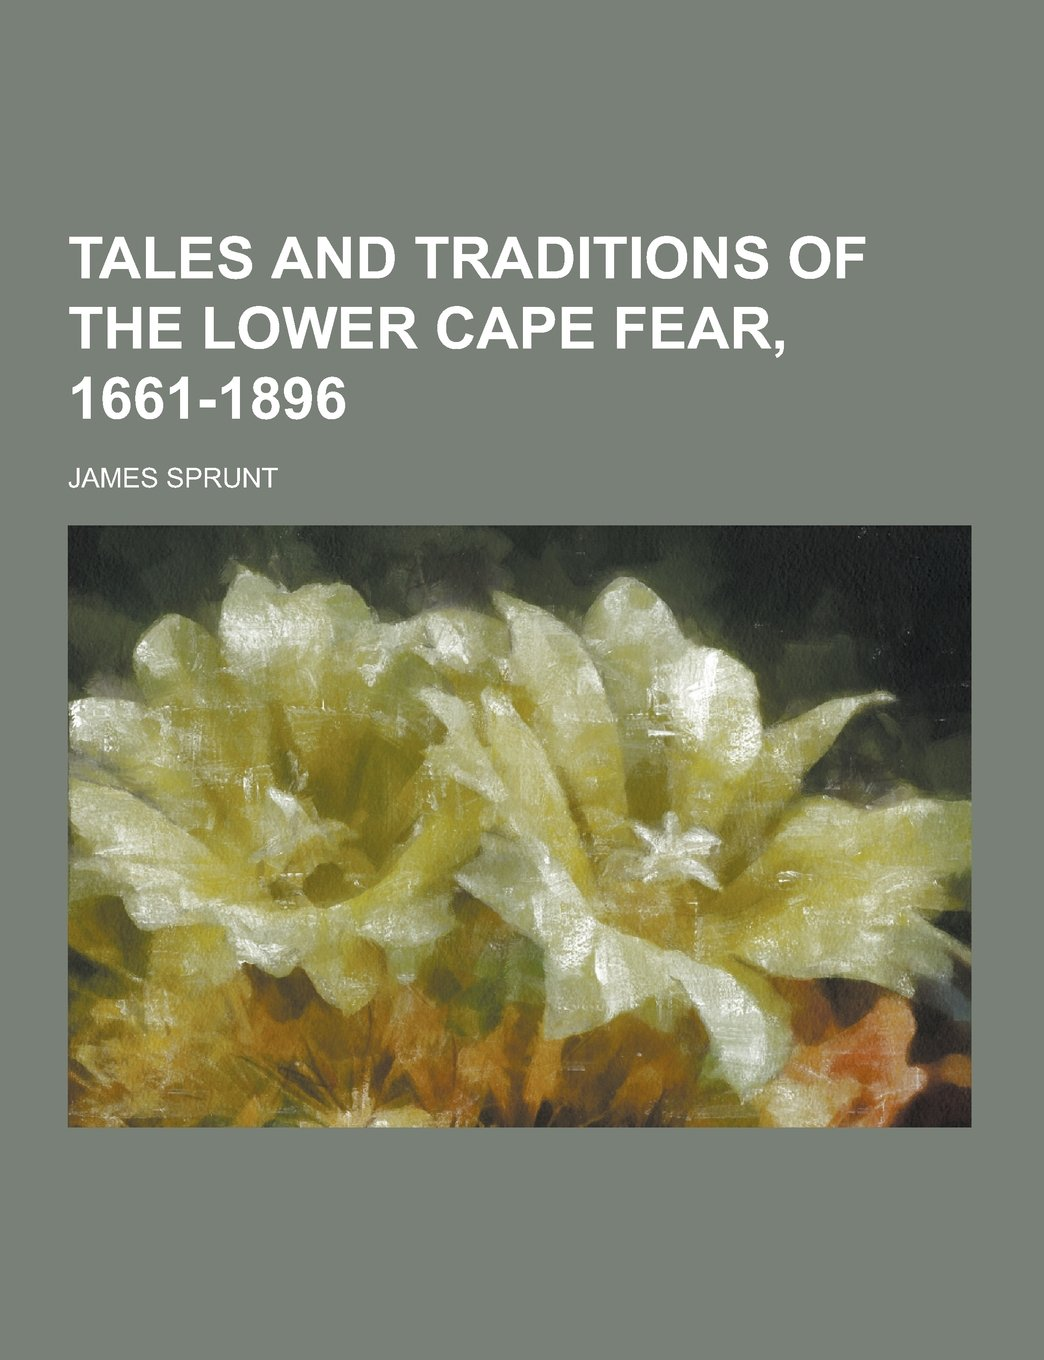 Image result for Tales and Traditions of the Lower Cape Fear, James Sprunt